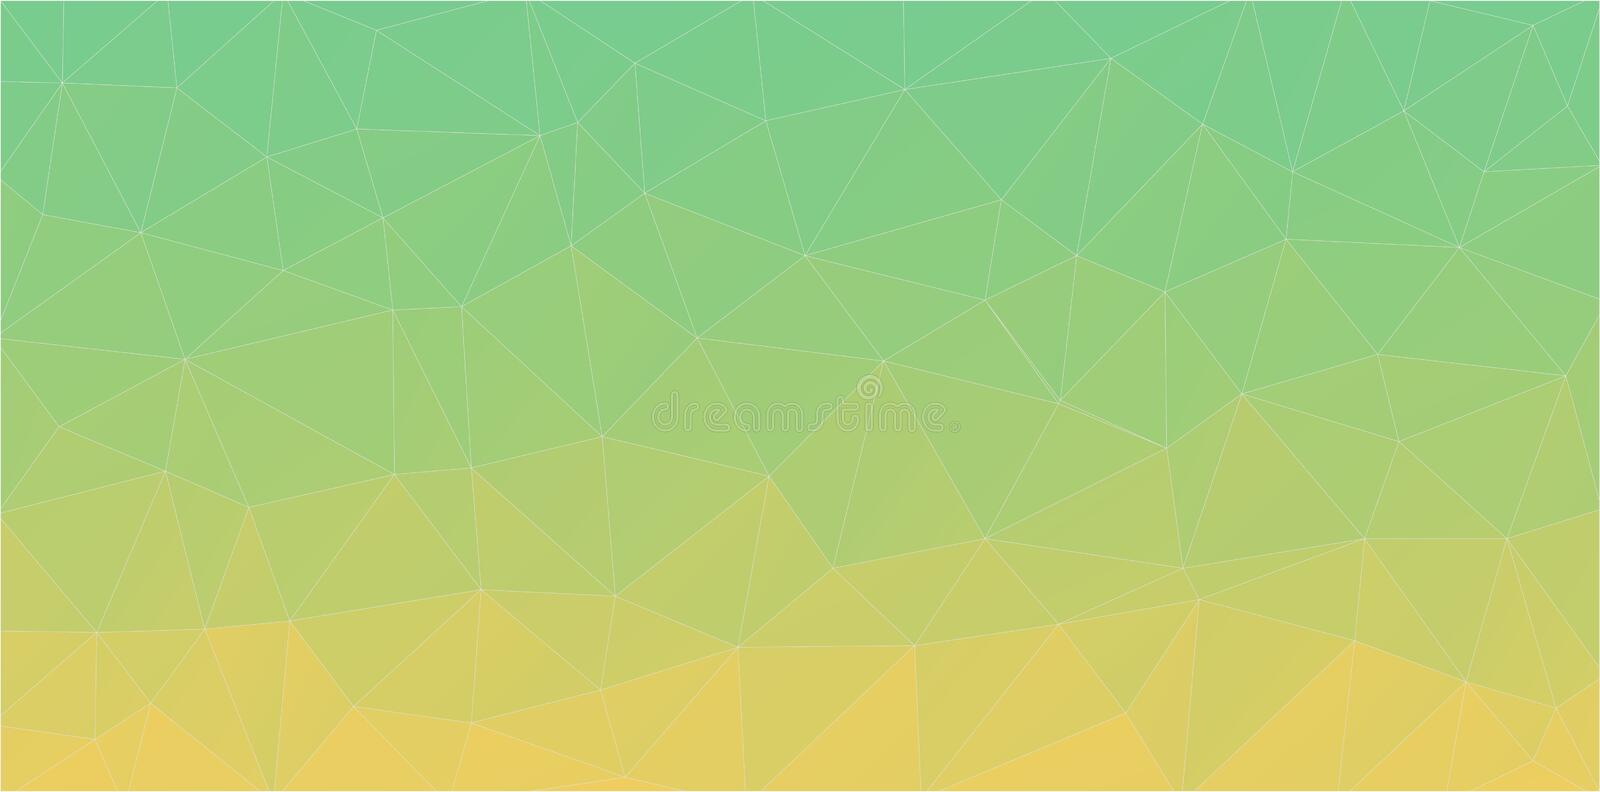 Green triangle background of geometric shapes. Art backgound for web. Abstract triangle shapes royalty free illustration